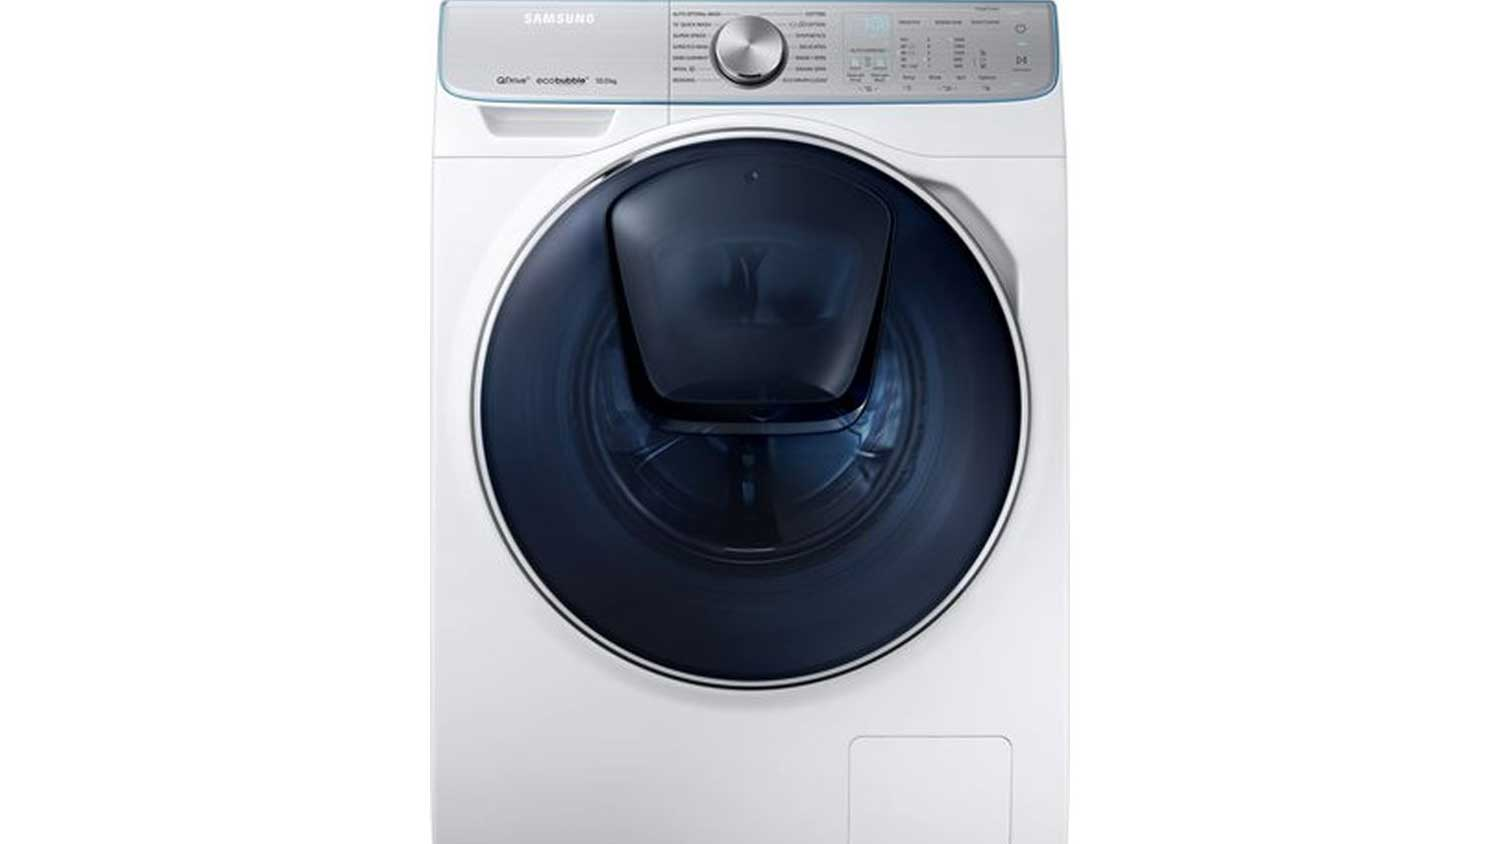 Samsung Washing Machines - 2019 review